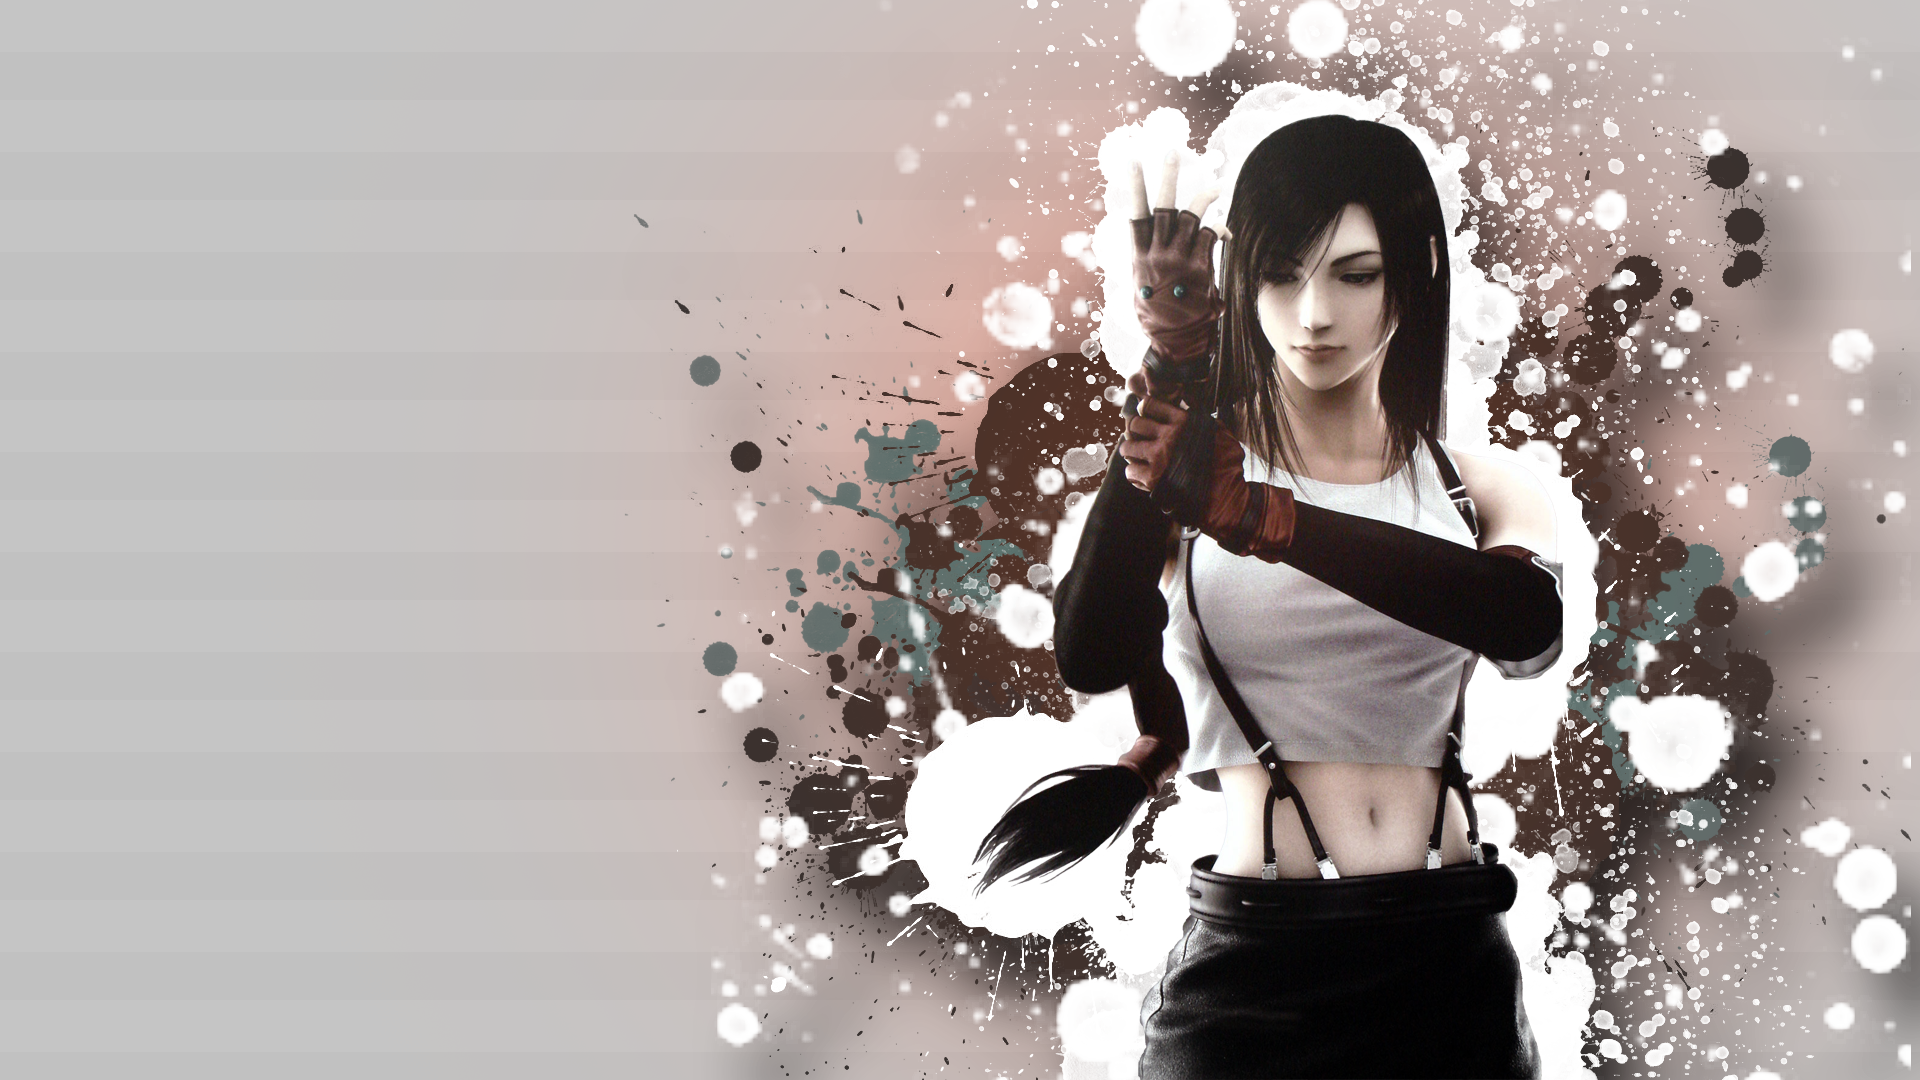 Steam Community Tifa Lockhart Wallpaper